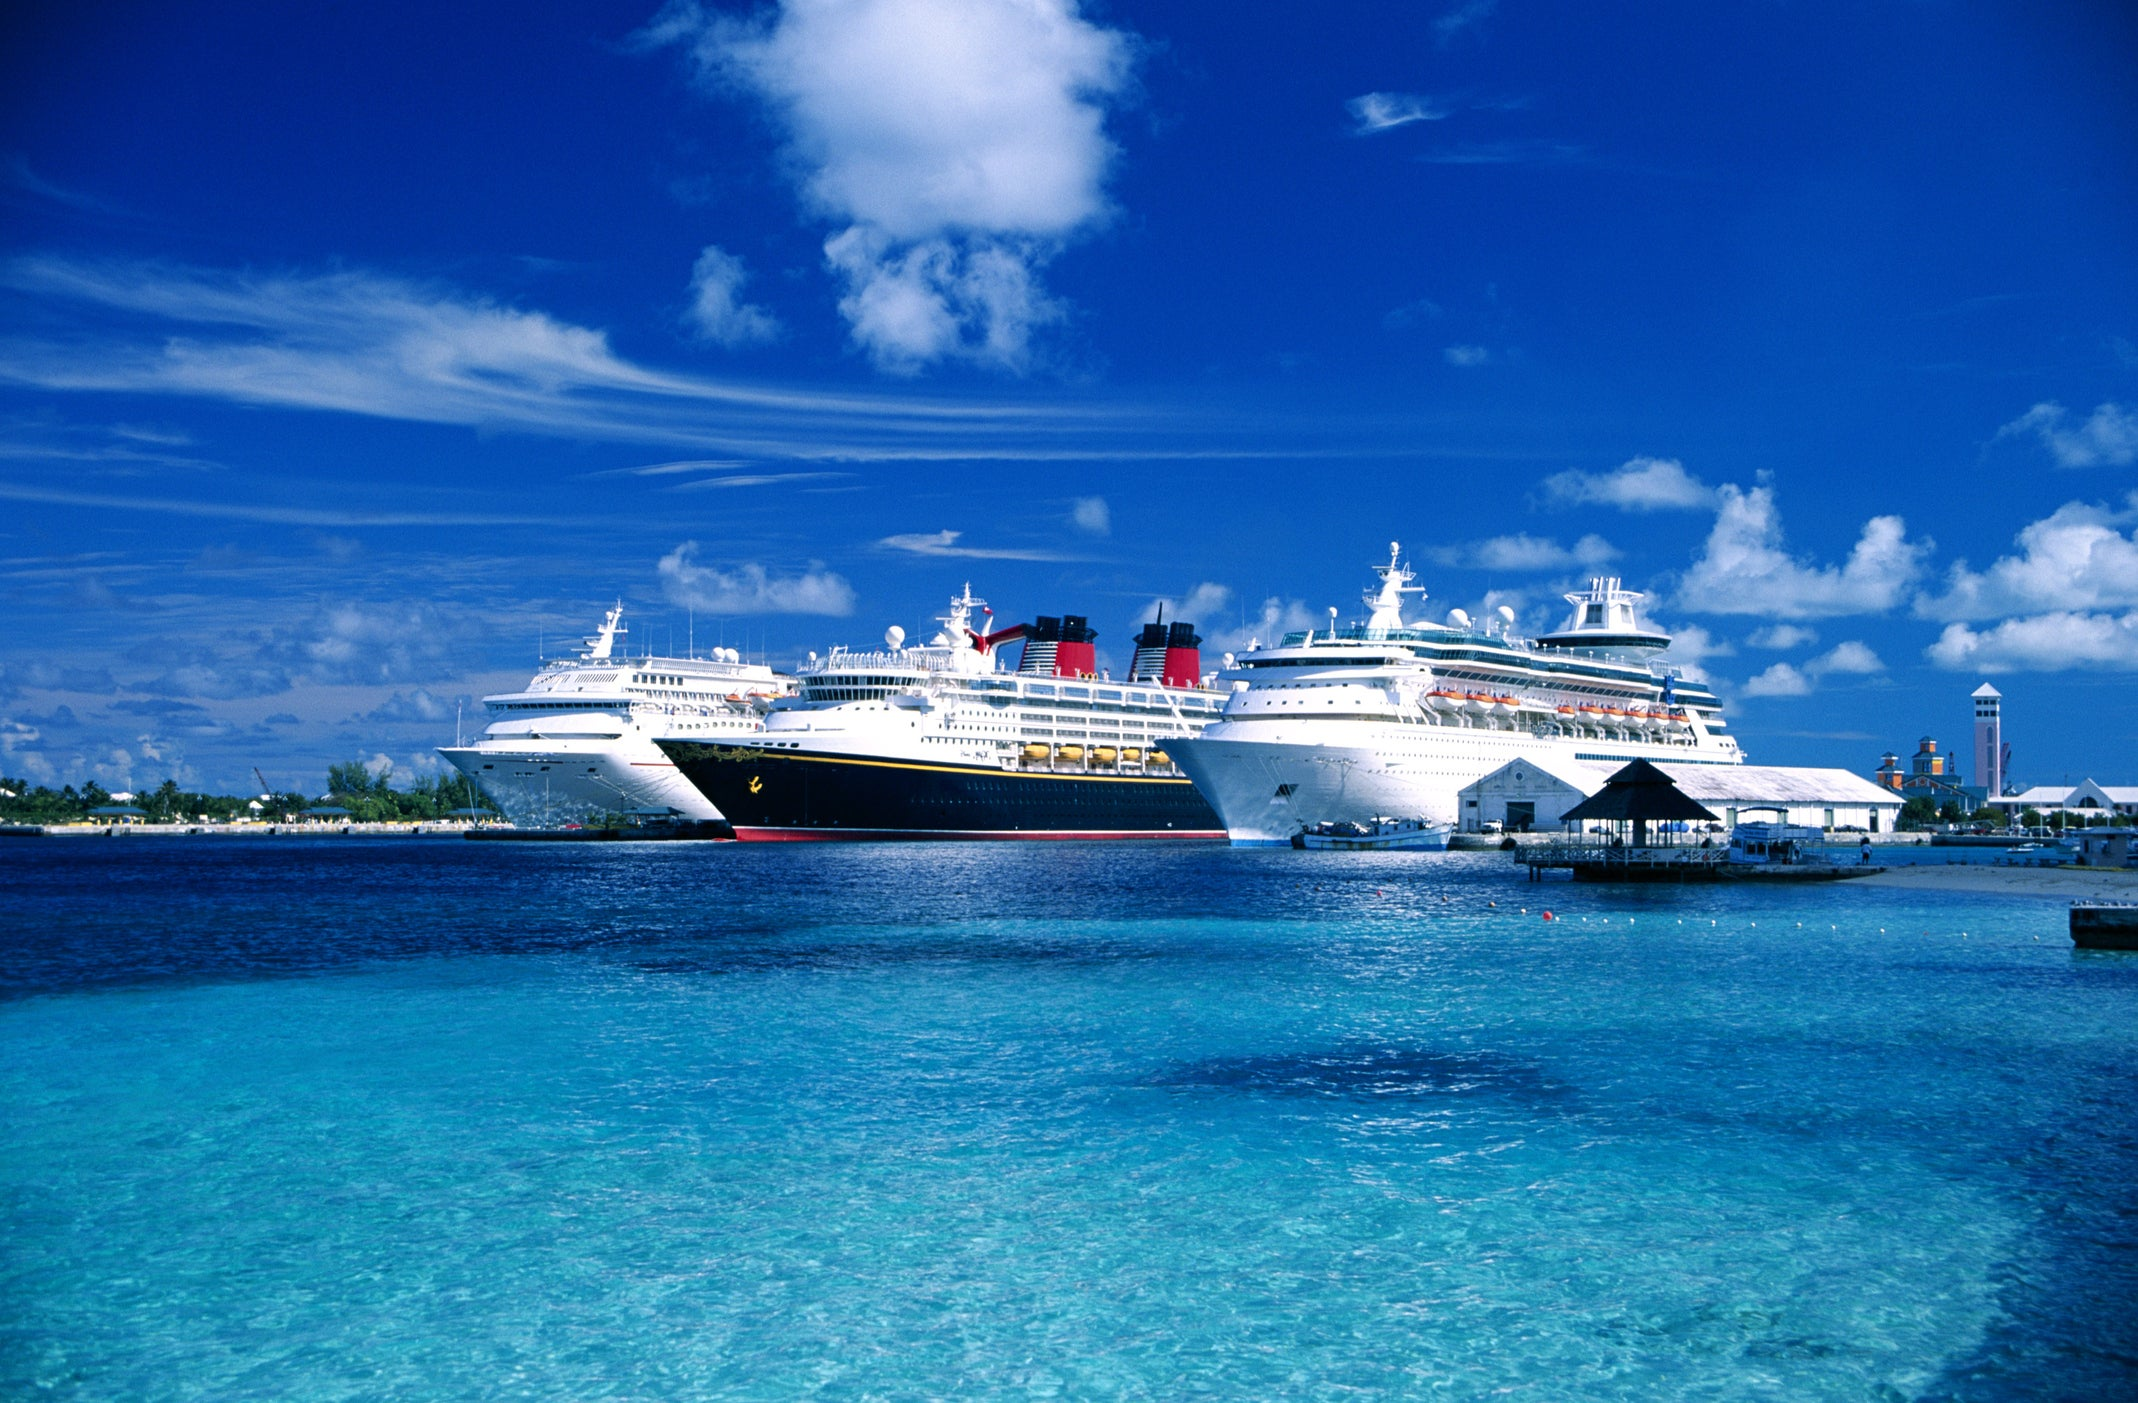 Why Carnival Corporation and Norwegian Cruise Line Stocks Popped Today - Motley Fool